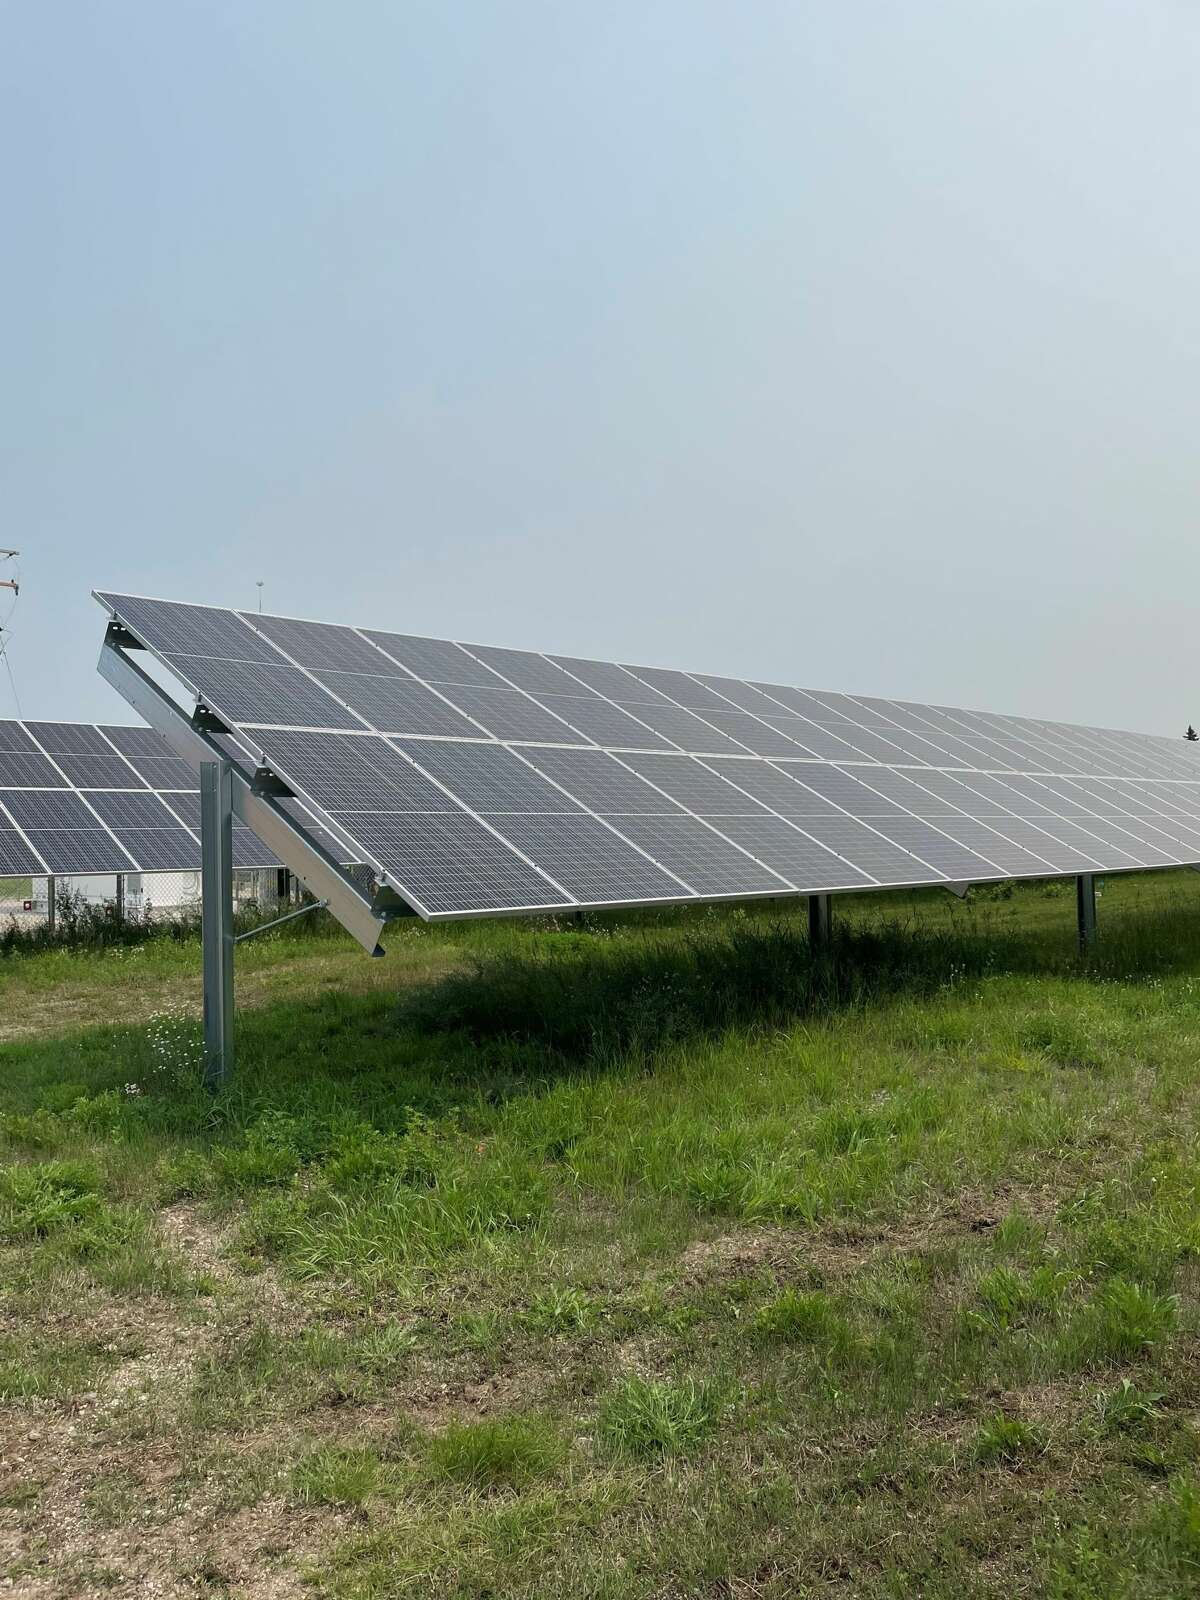 A solar panel at the new Cadillac Solar Gardens power plant is shown at a dedication event July 19, 2021.